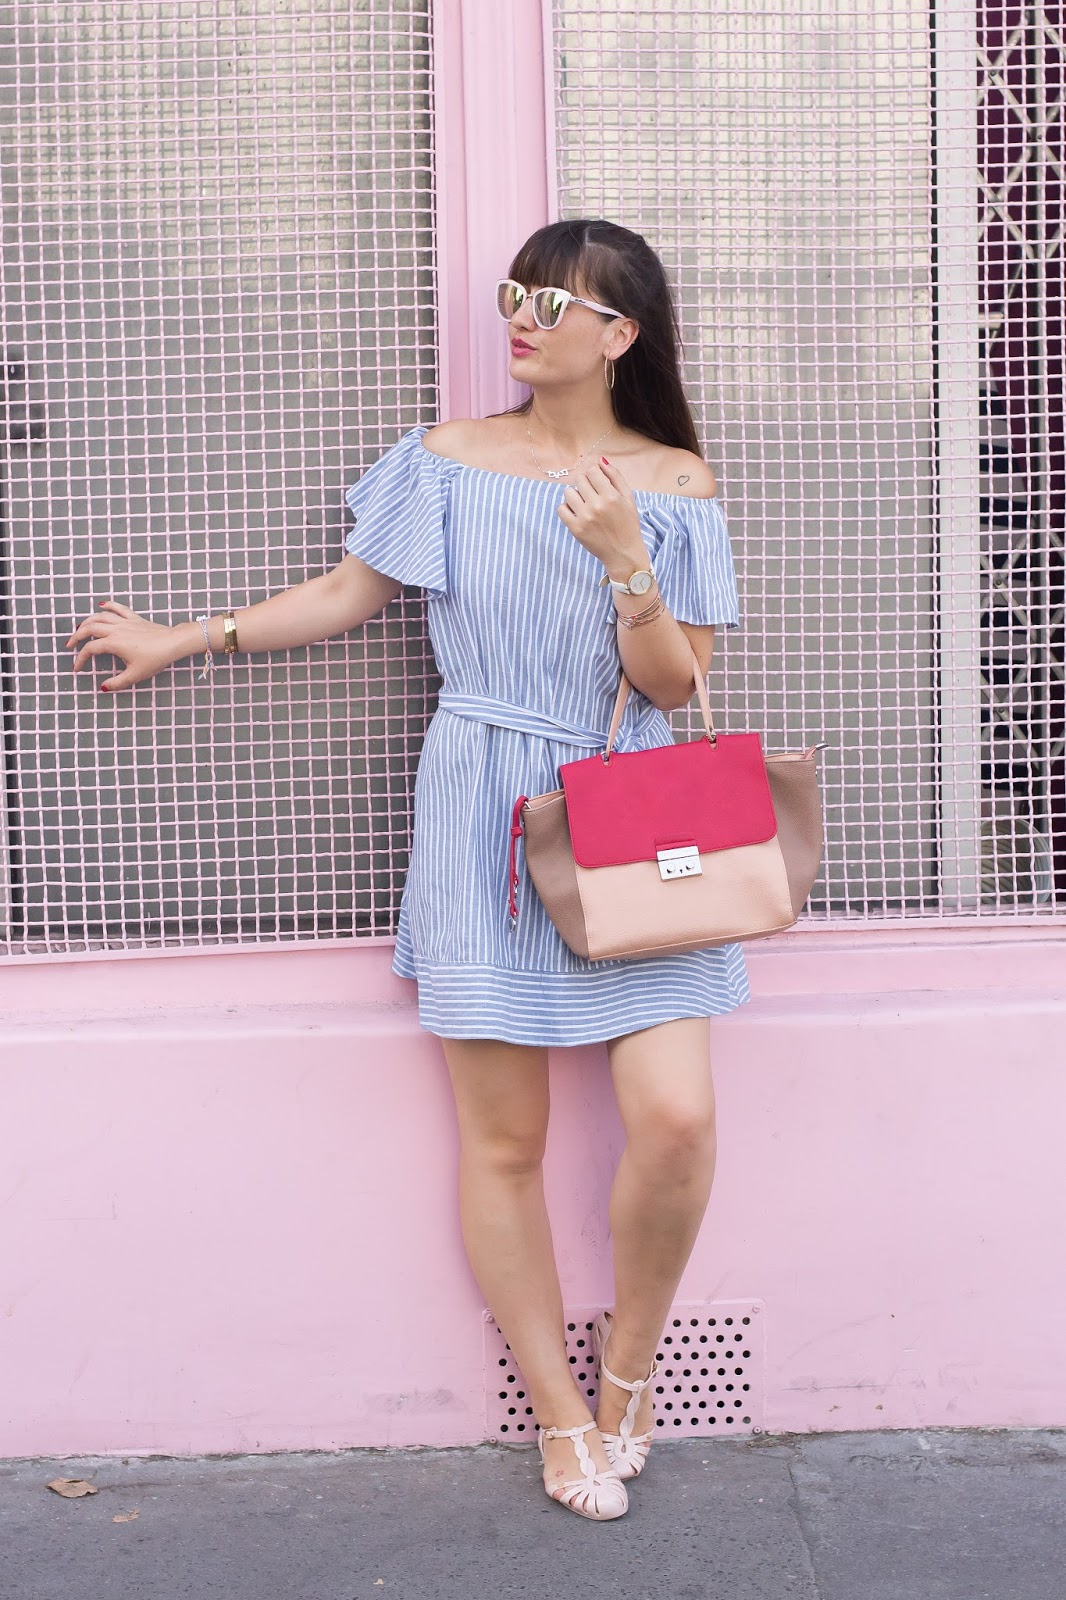 meetmeinparee, summer style, cute look, nikita wong, paris, parisian blogger, parisian style, fashion photography